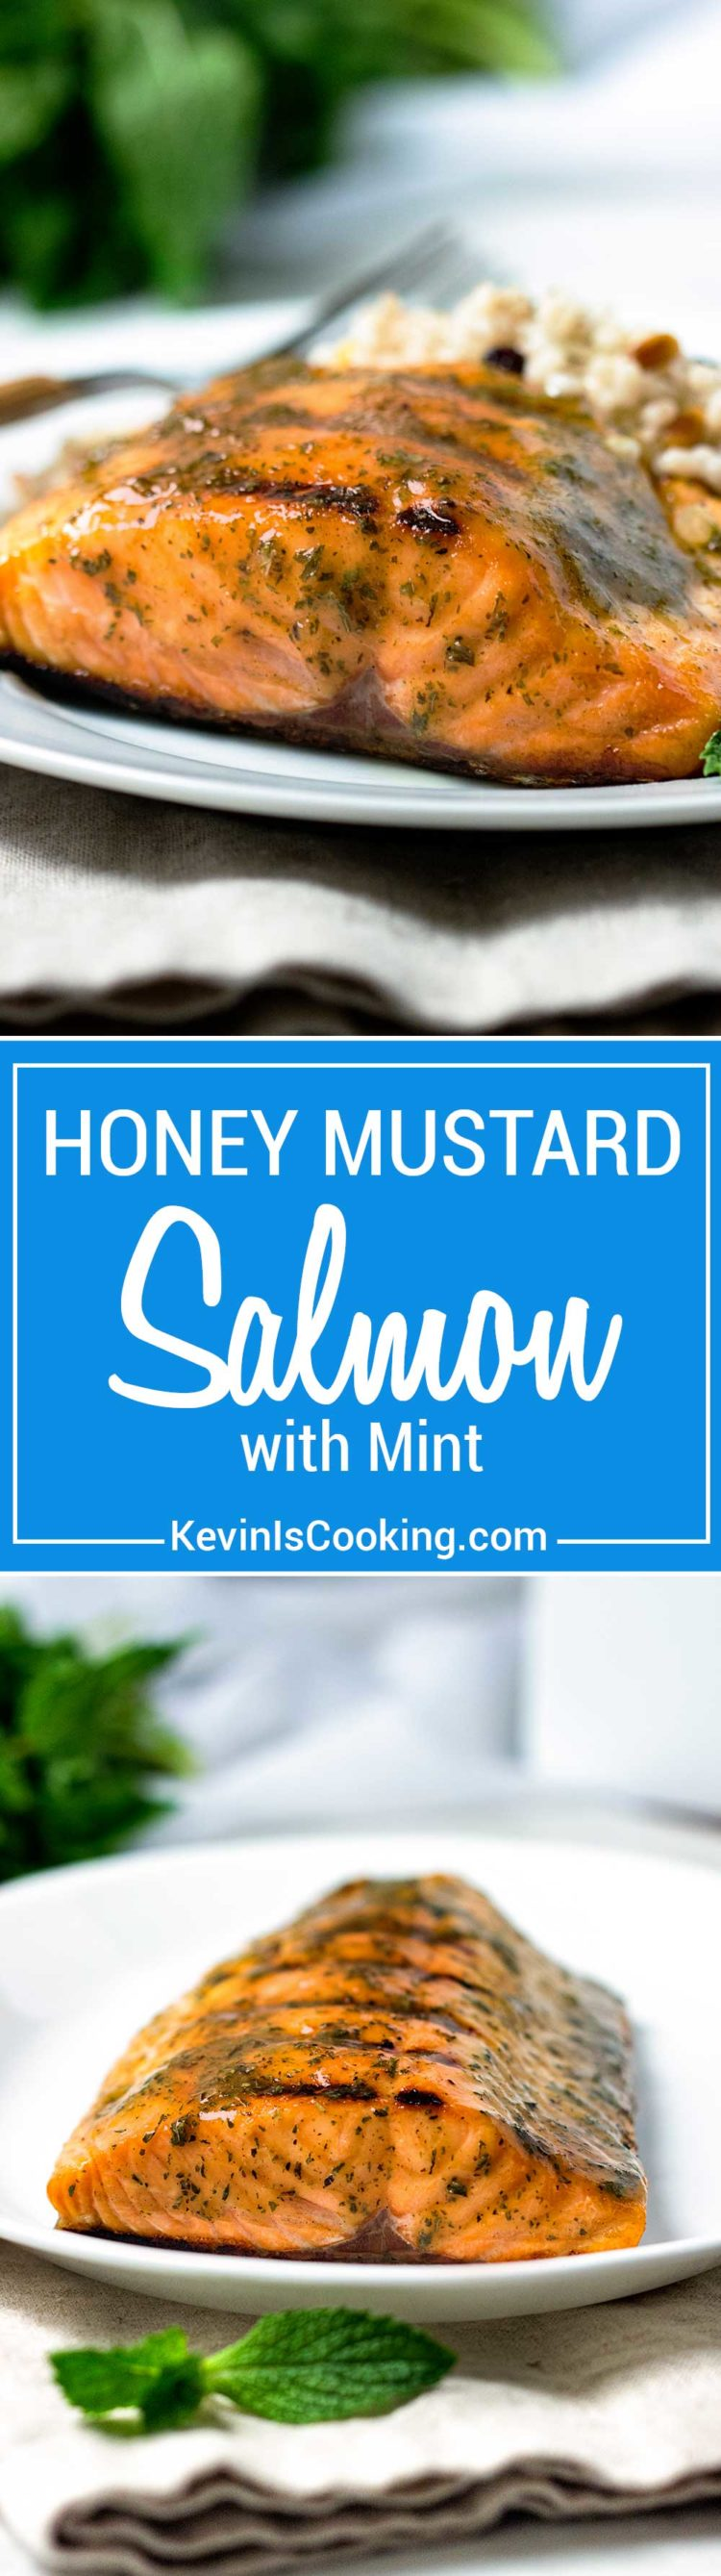 This Honey Mustard Grilled Salmon is super easy quick and healthy. A honey, mustard and dried mint sauce bastes after grilling. Perfect mid-week dinner everyone loves.